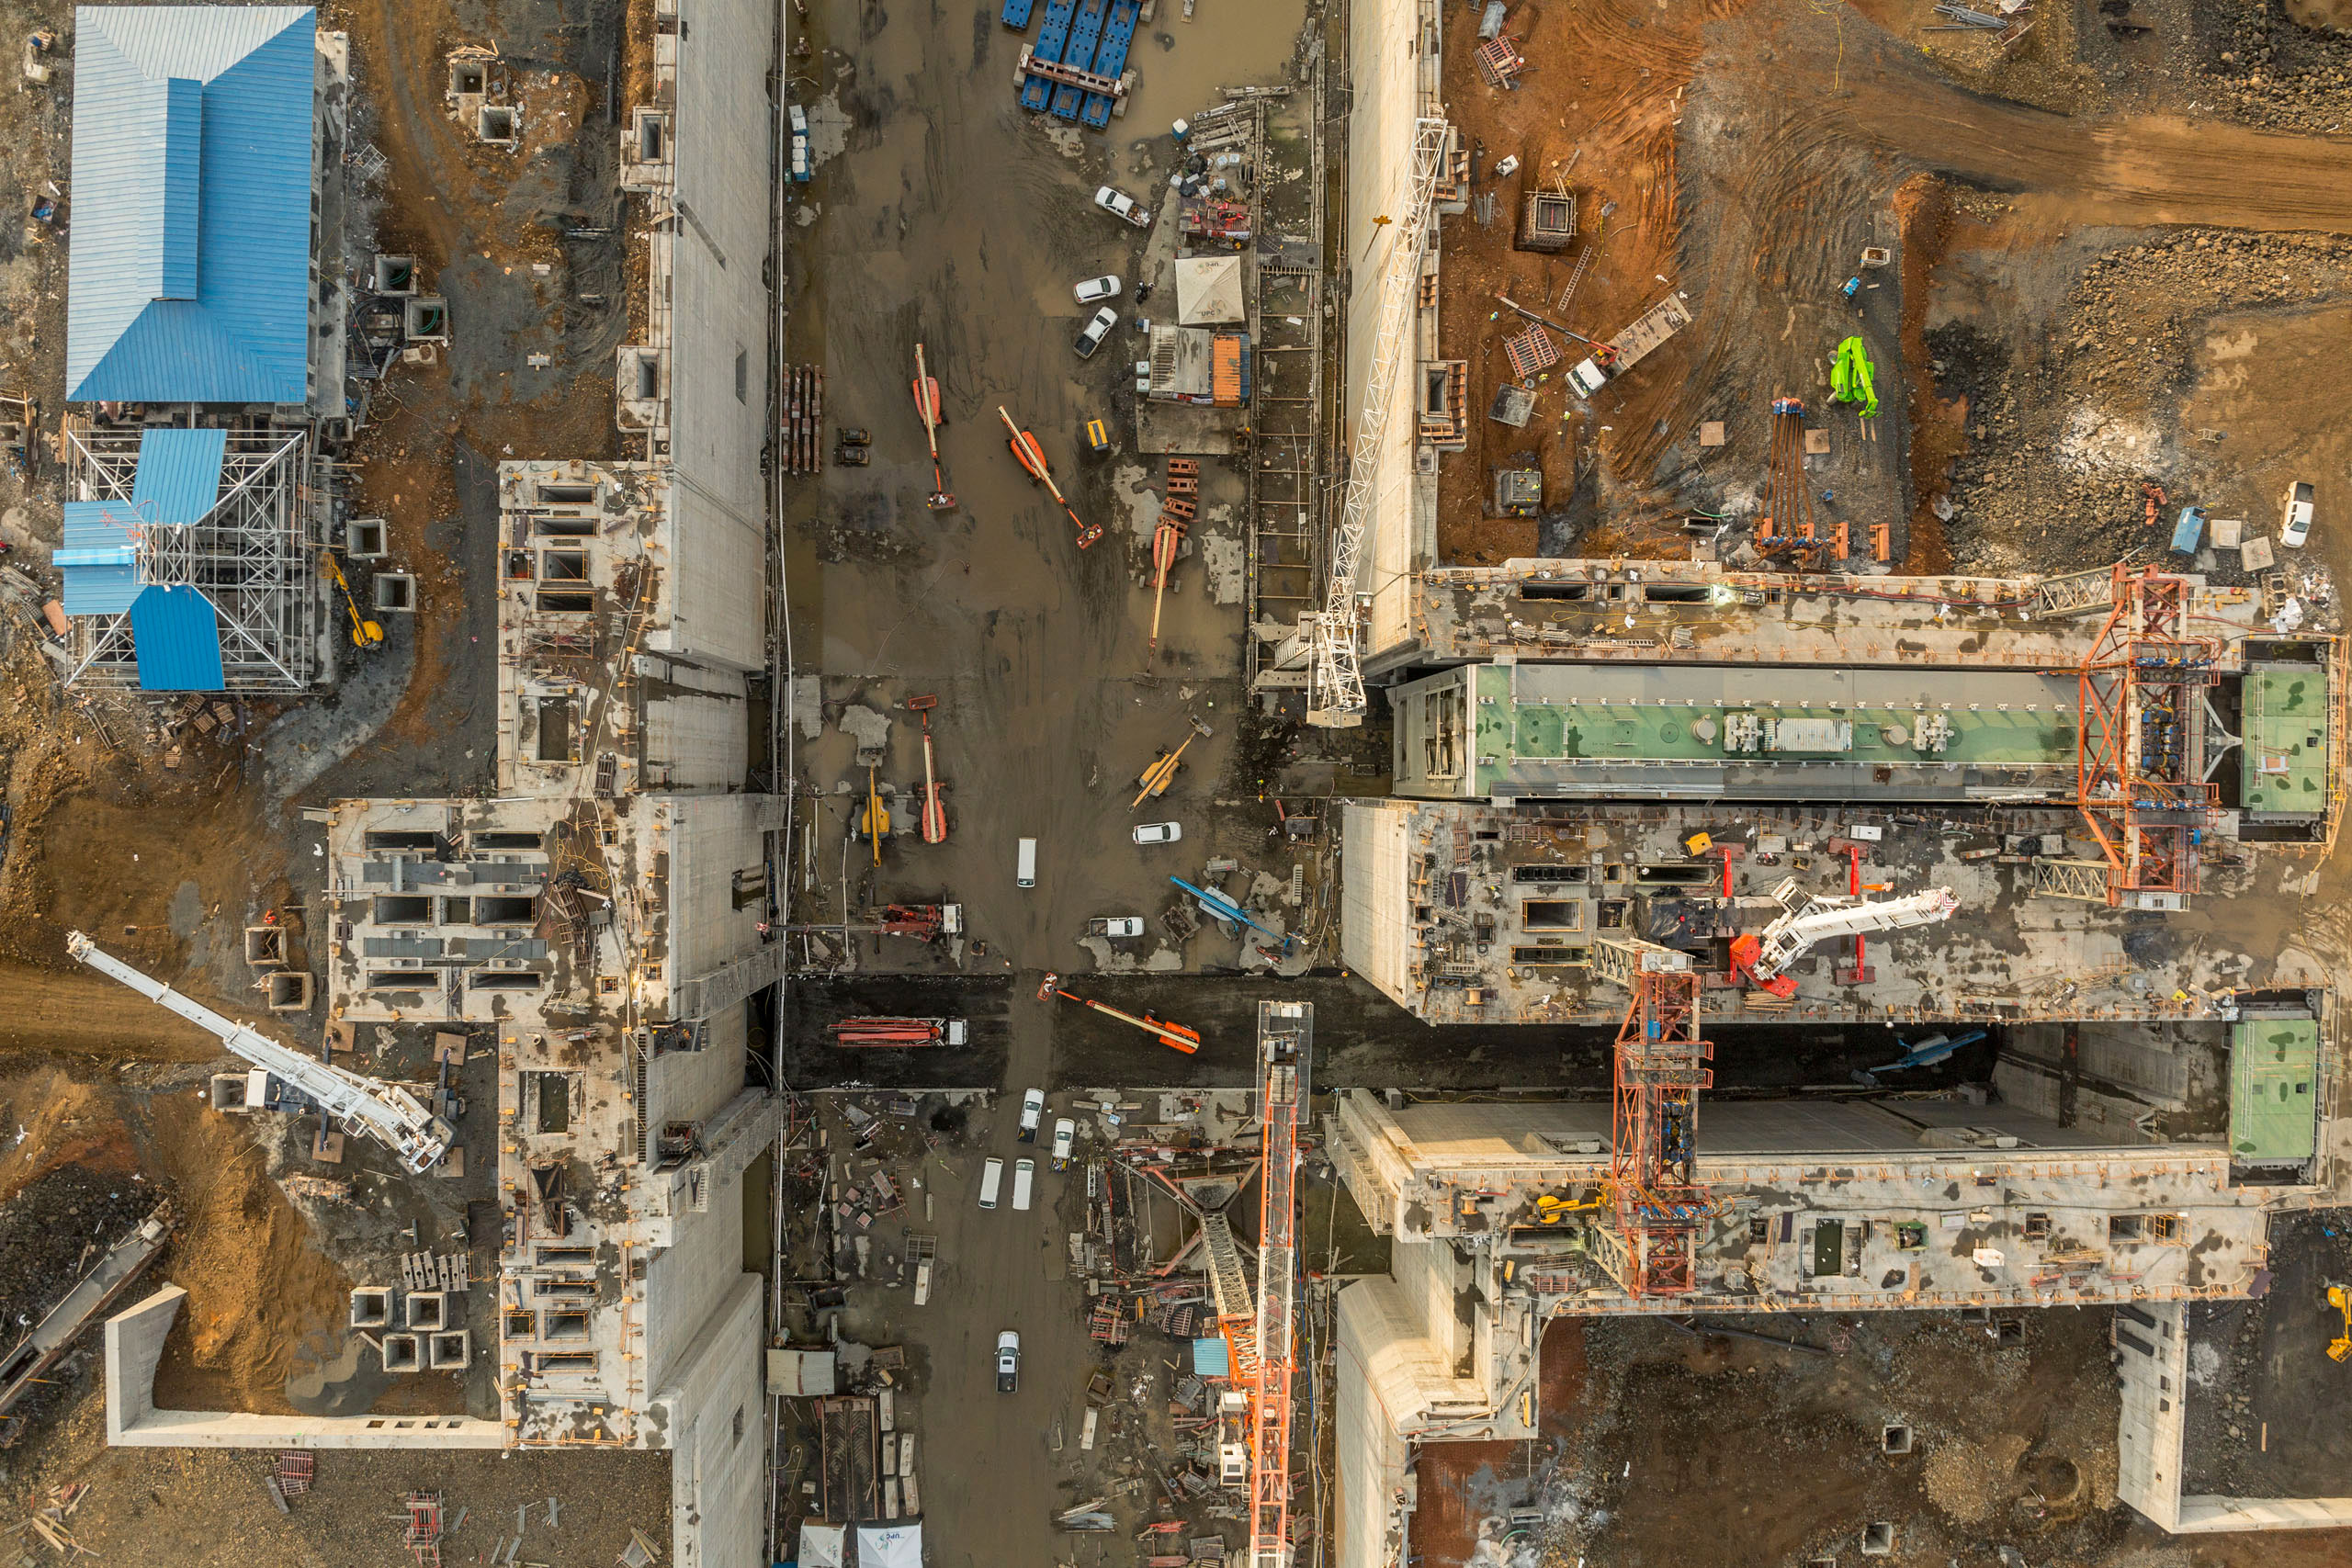 Overview showing part of a lock on the Pacific side of the Panama Canal Expansion project, April 22, 2015.